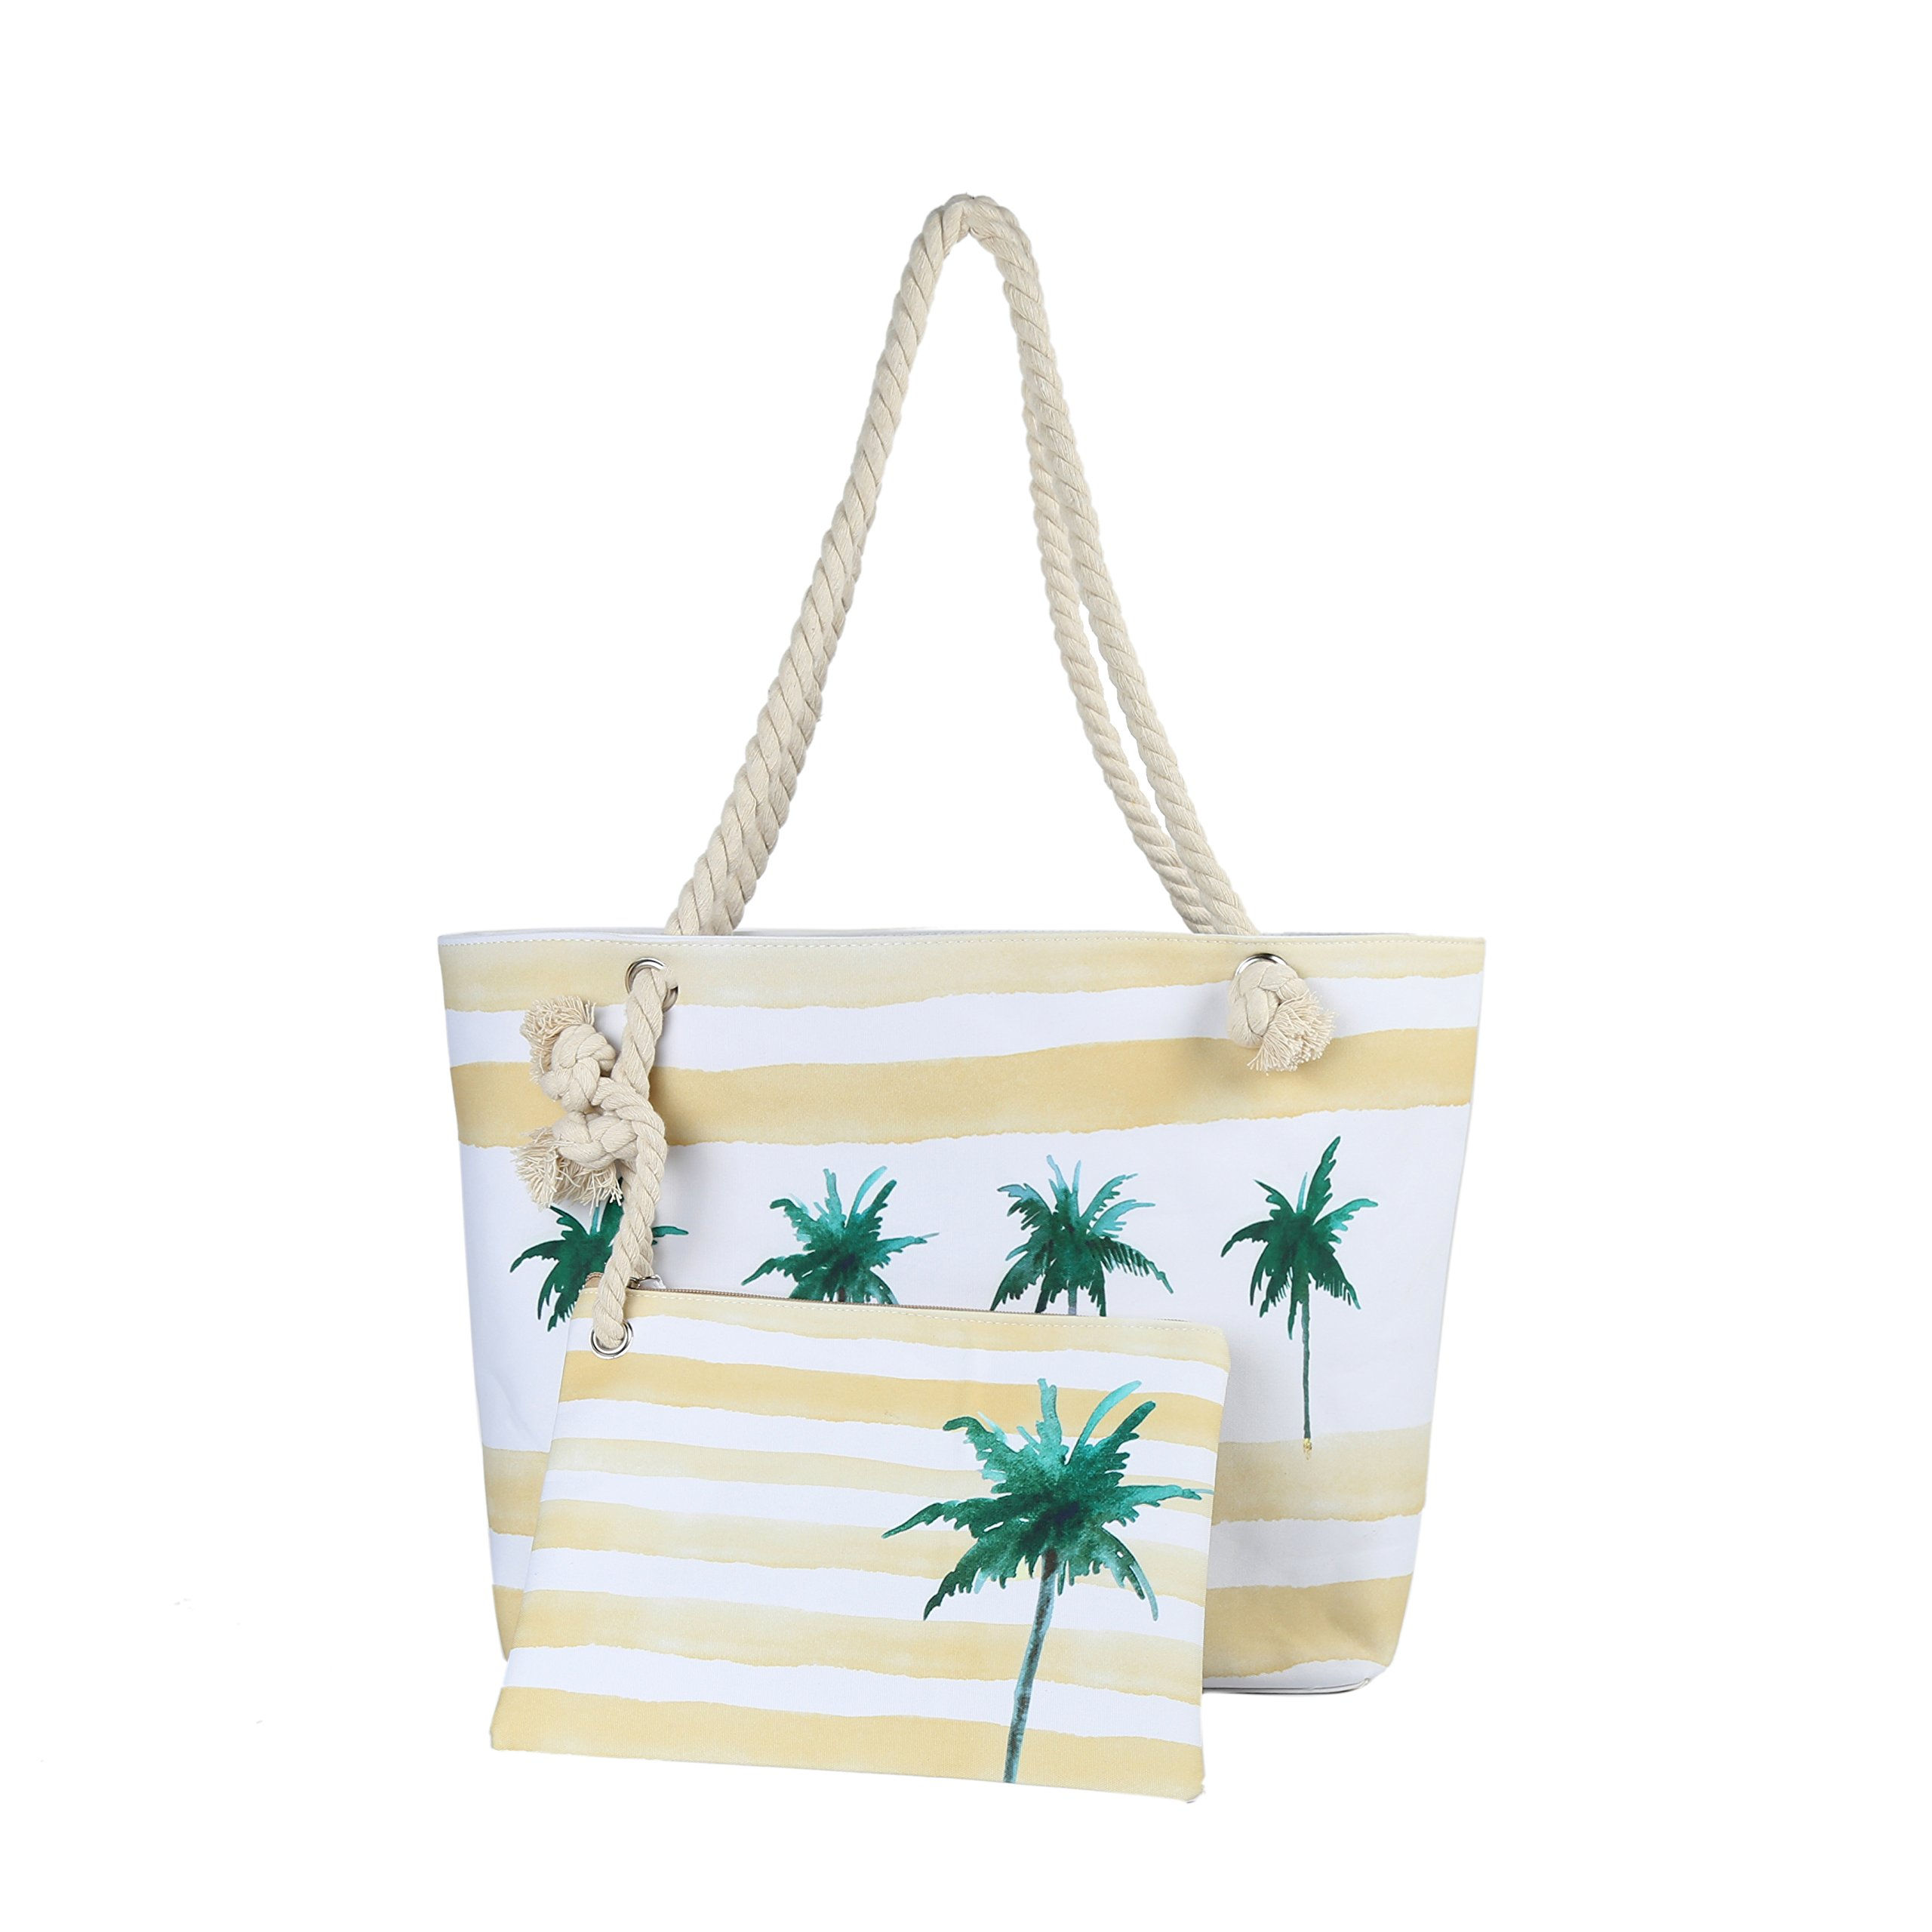 Inpluser Beach Tote Bag Extra Large with Waterproof Small Bag Travel Shoulder Rope Bag 2 Pieces Set (Coconut tree-Yellow)